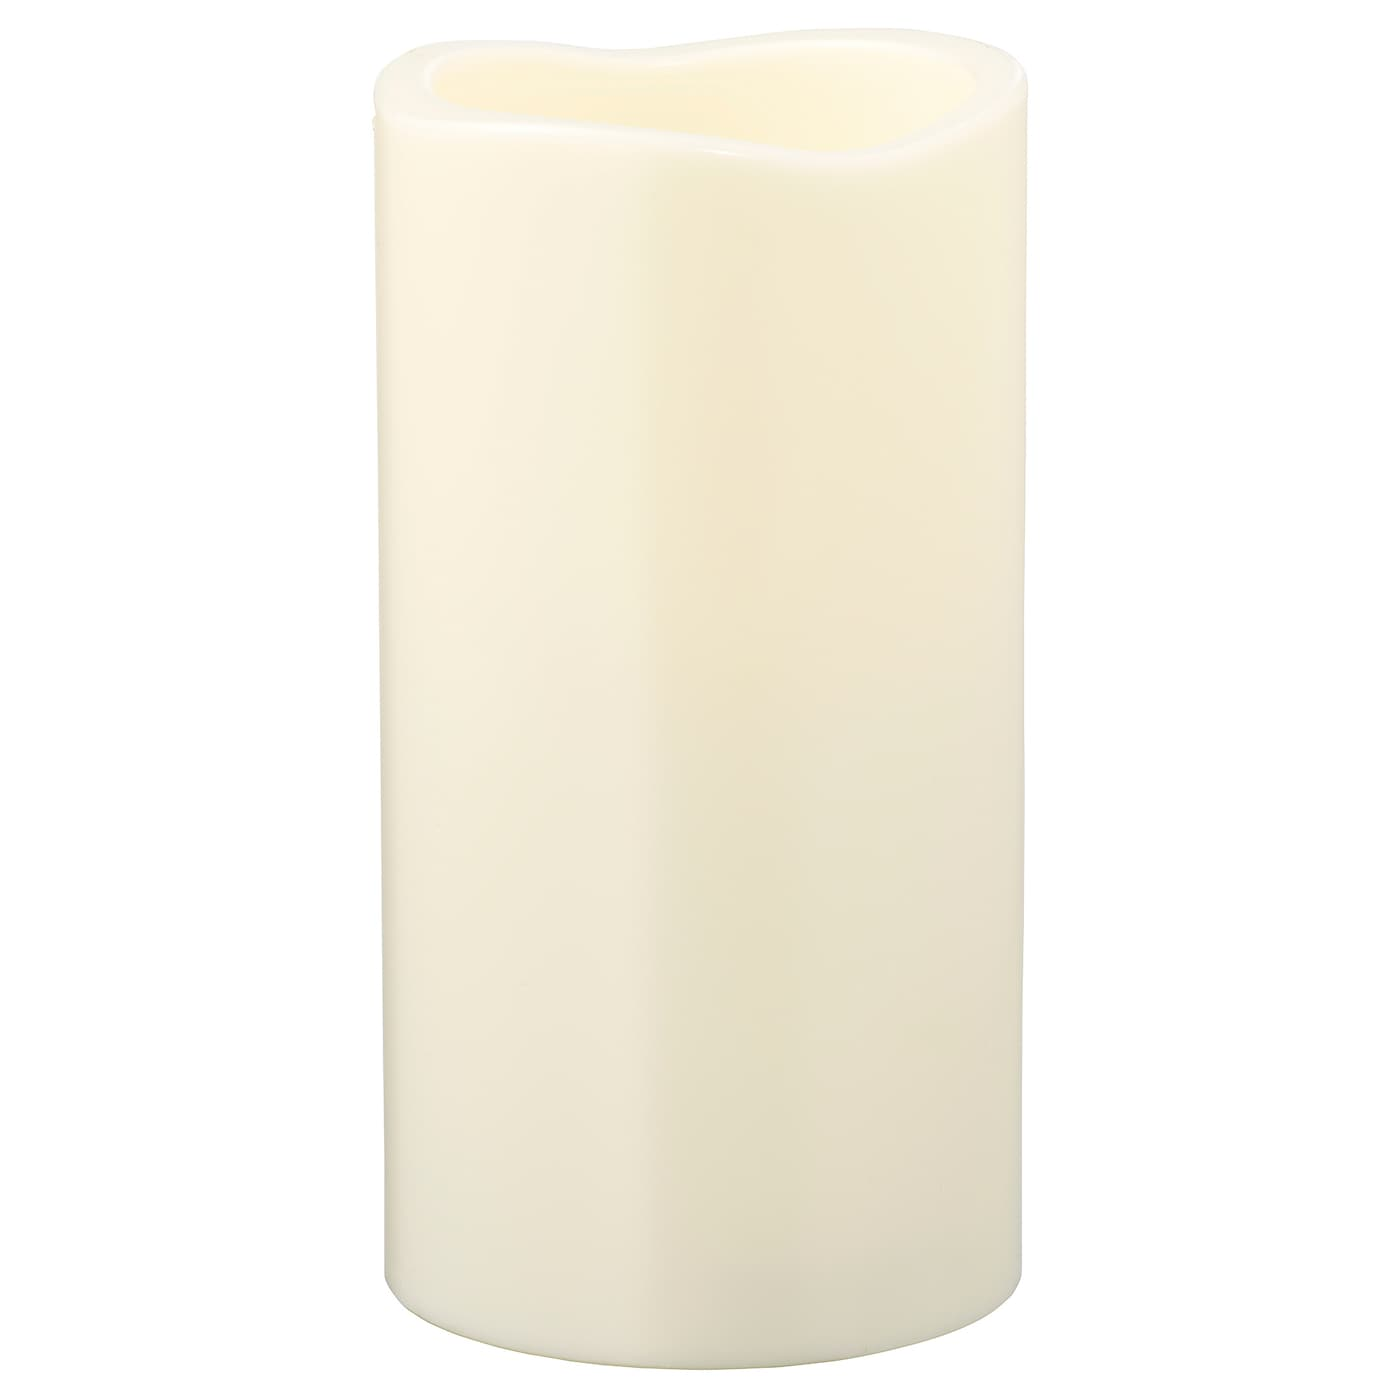 IKEA GODAFTON LED block candle, in/outdoor